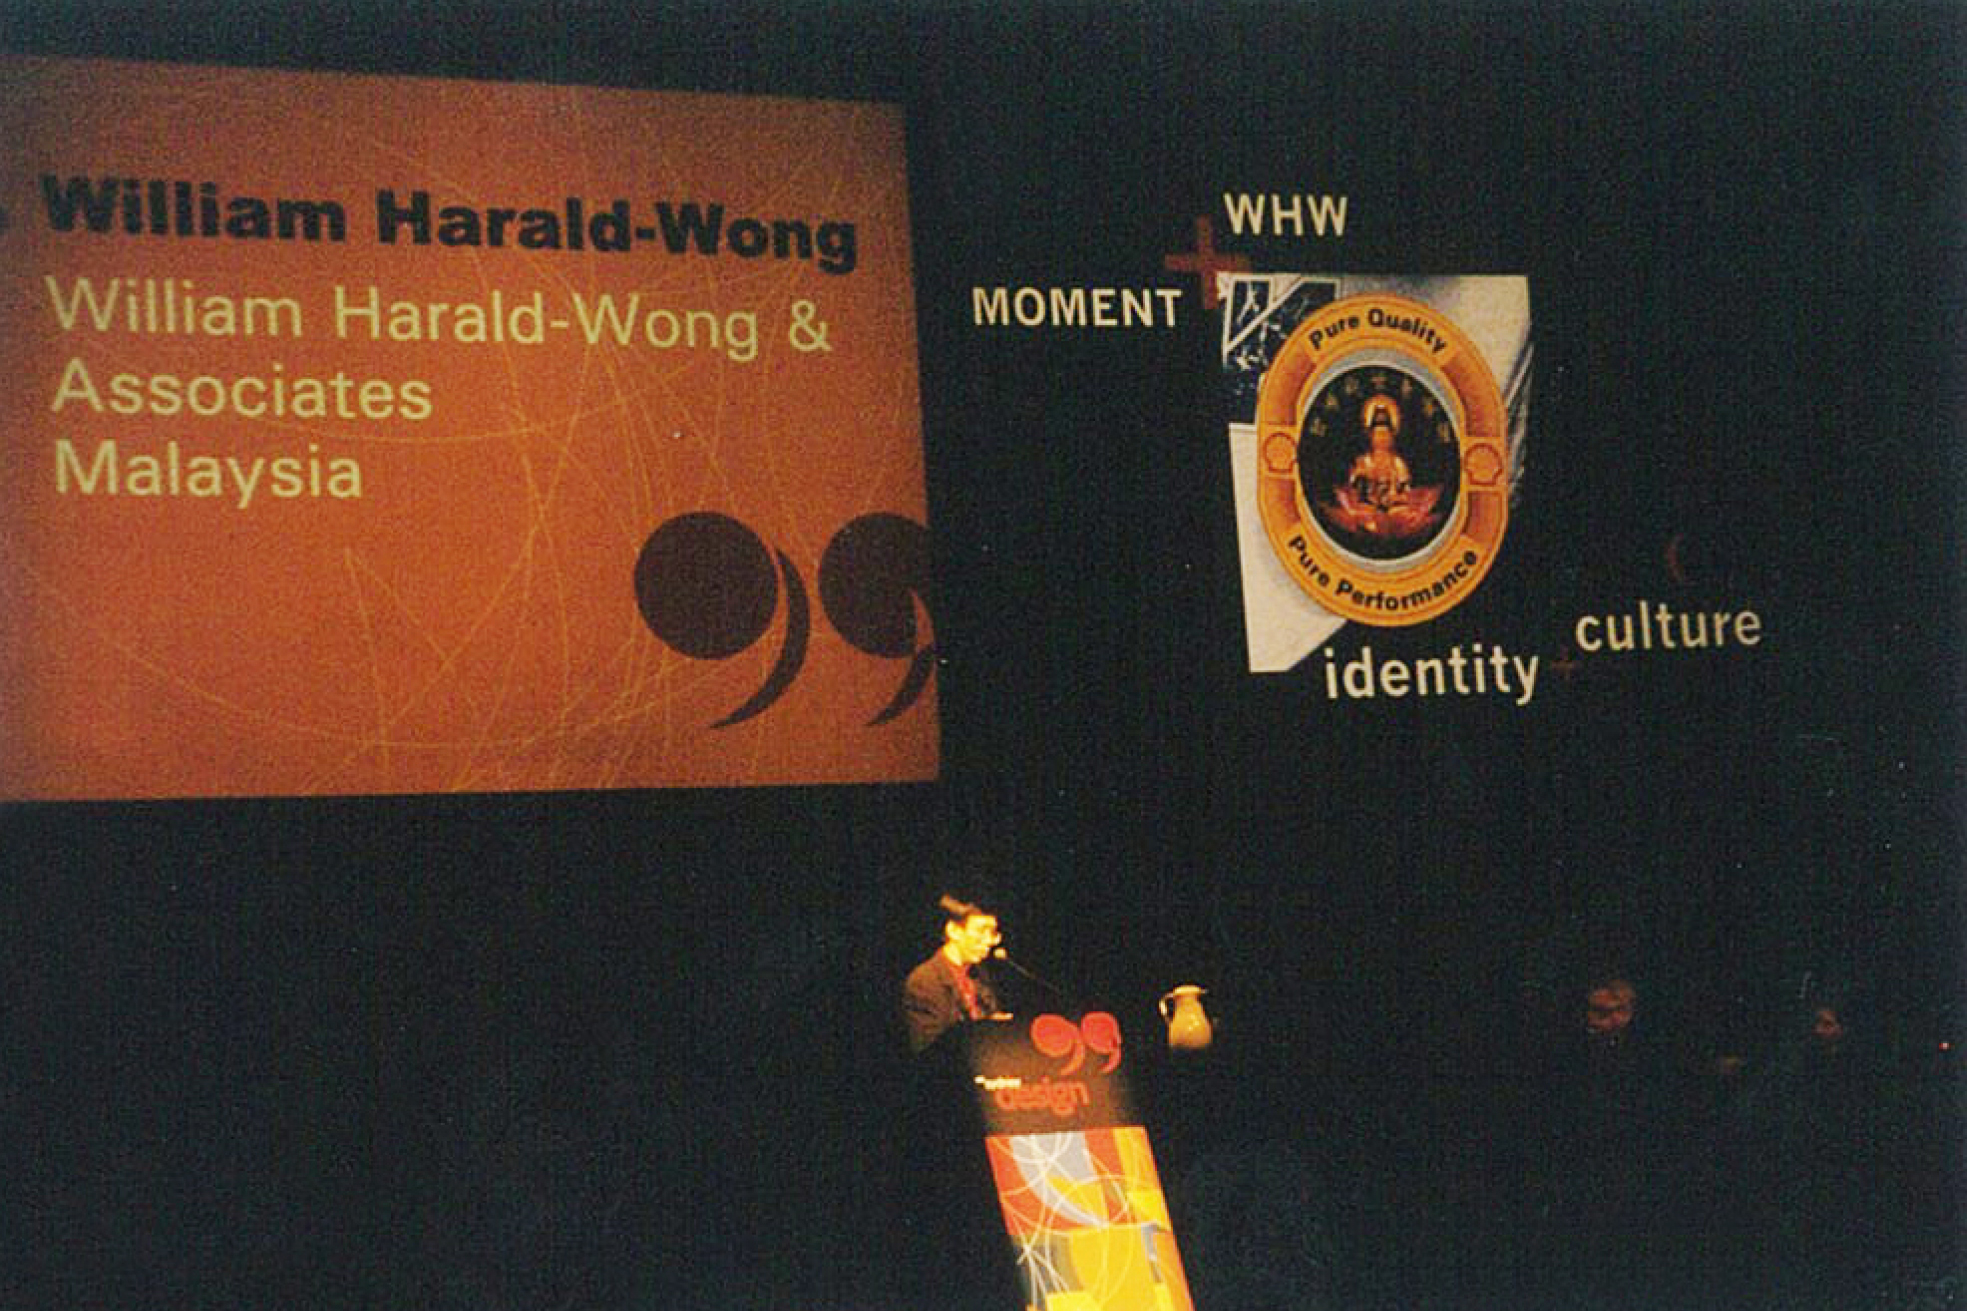 whwWeb_About_whw_Activities_AU_Sydney99.jpg